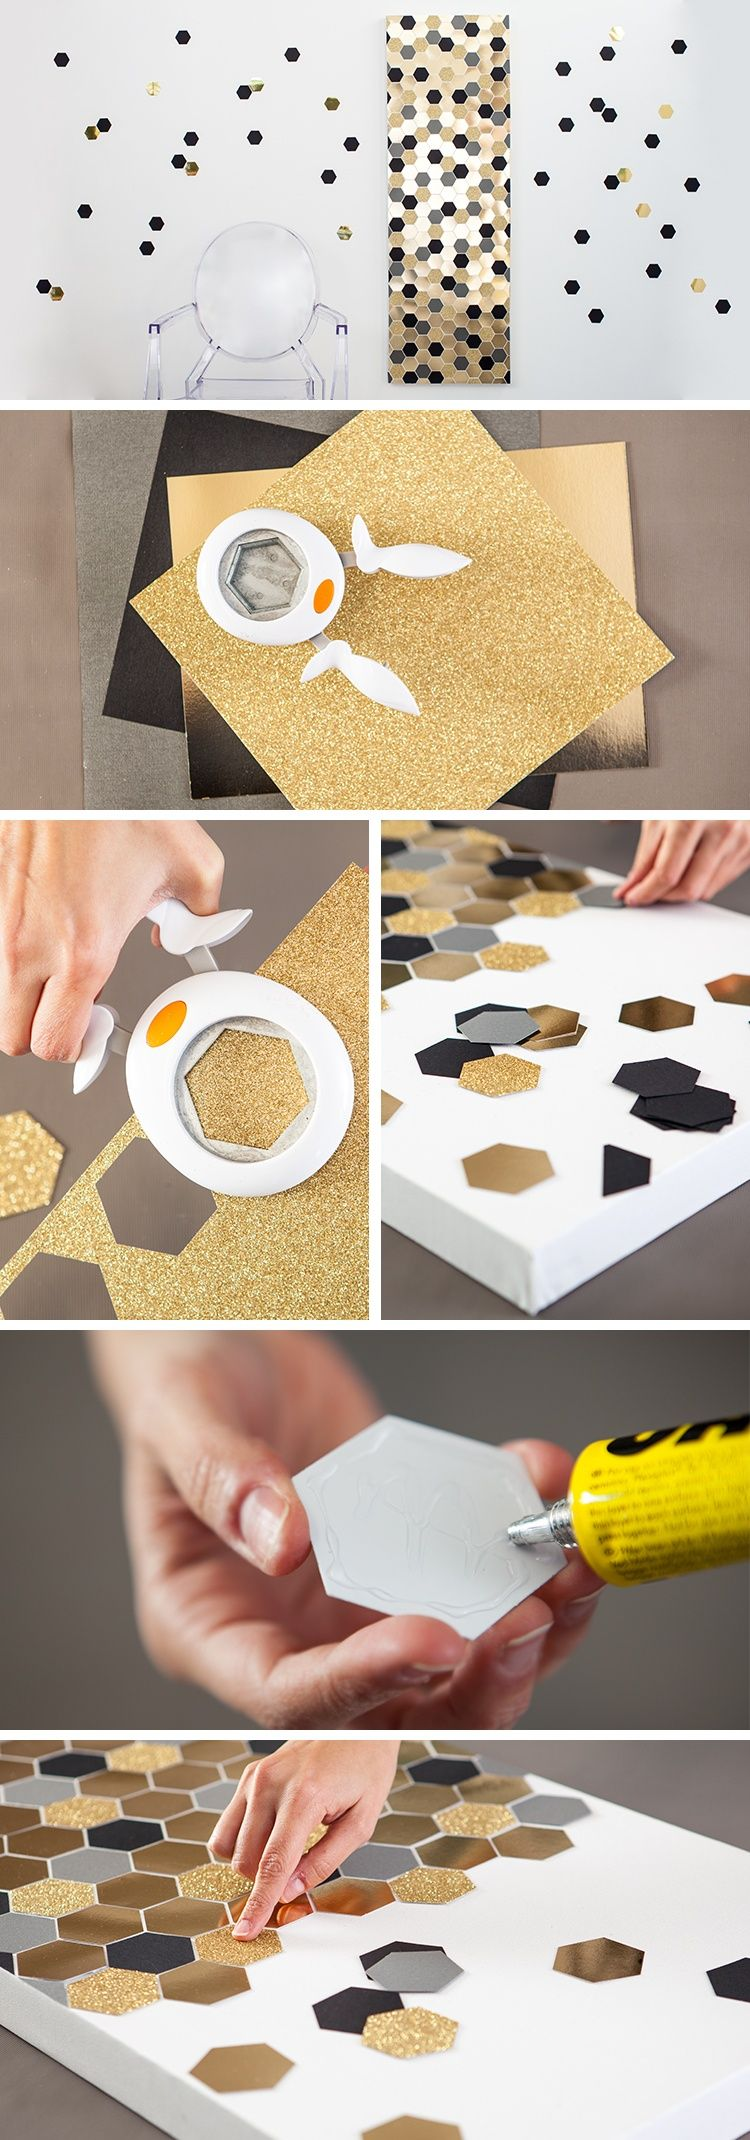 simple diy wall art ideas for your home crafts pinterest